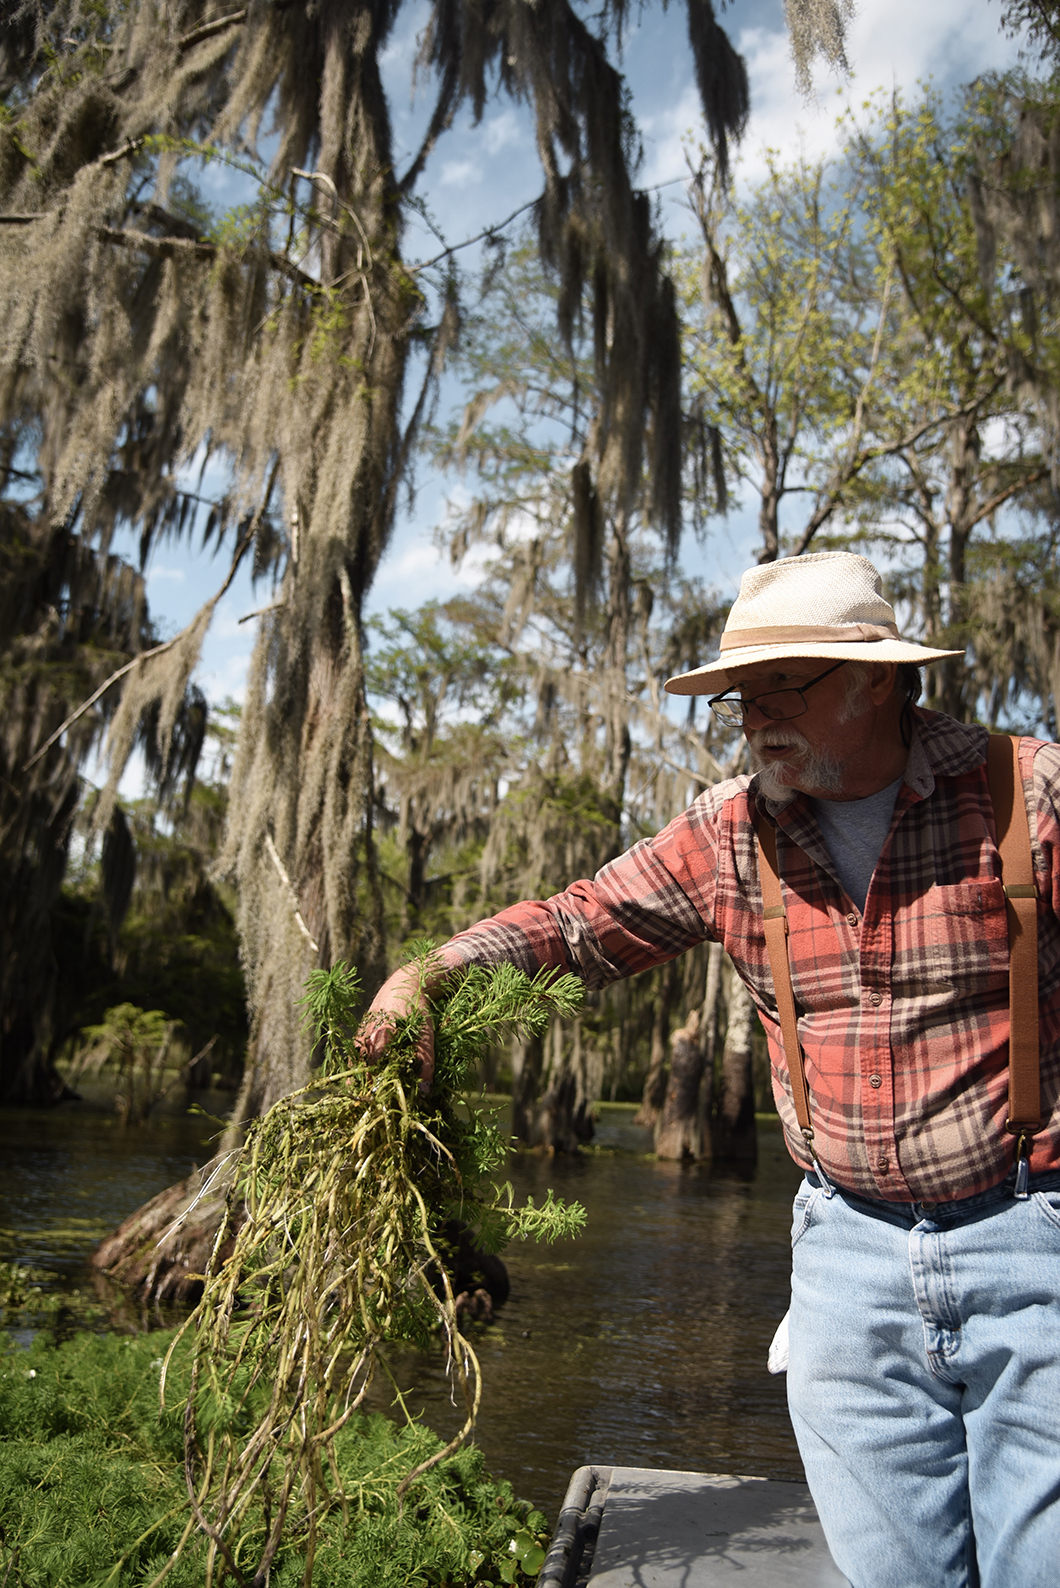 Notre guide au Lac Martin, Cajun Country Swamp Tours